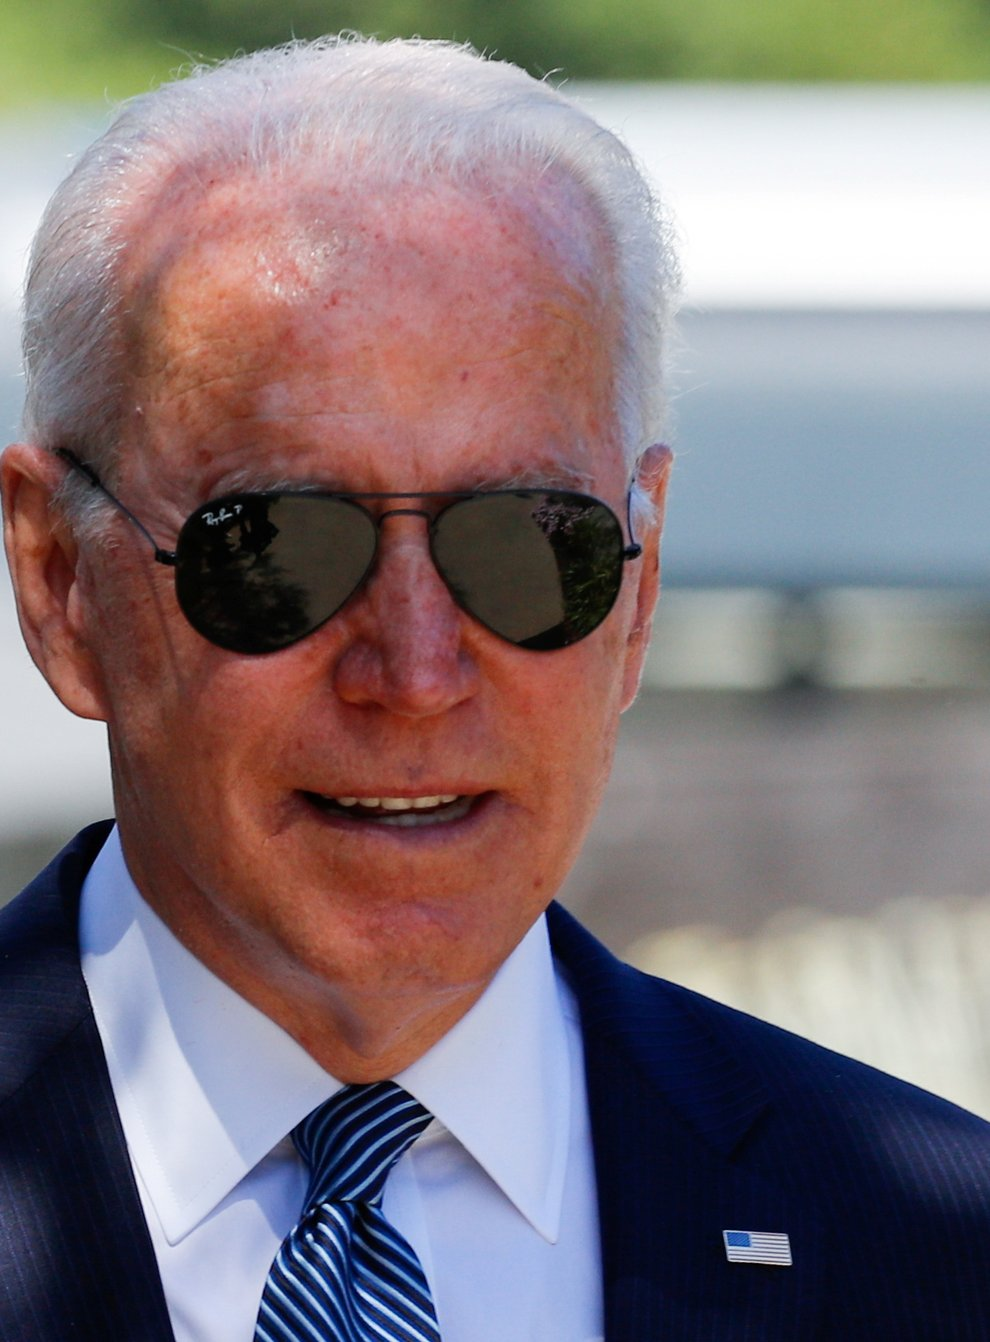 US President Joe Biden will travel to Glasgow for the summit (Phil Noble/PA)